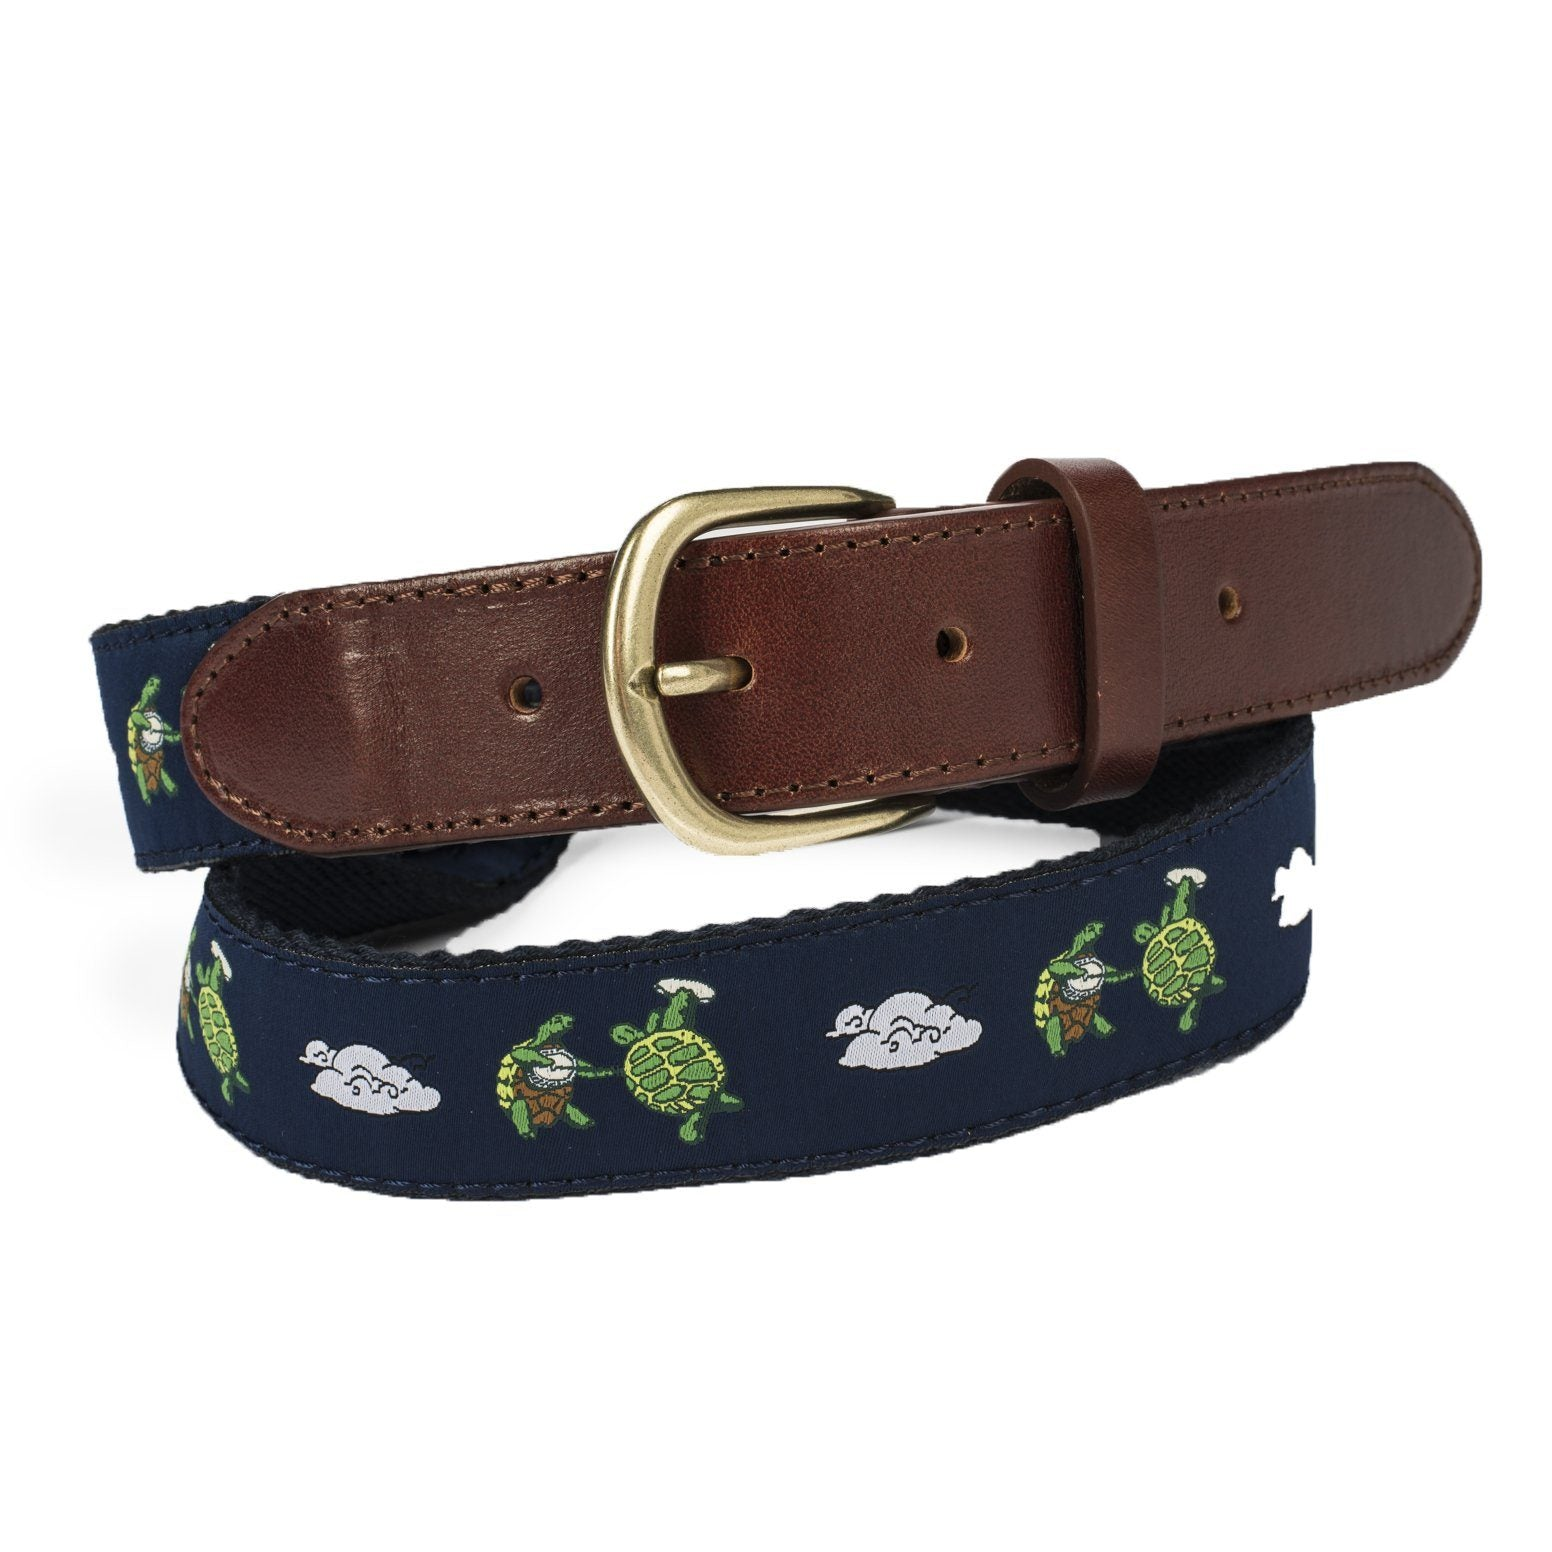 Grateful Dead Terrapin Daydream Belt - Section 119